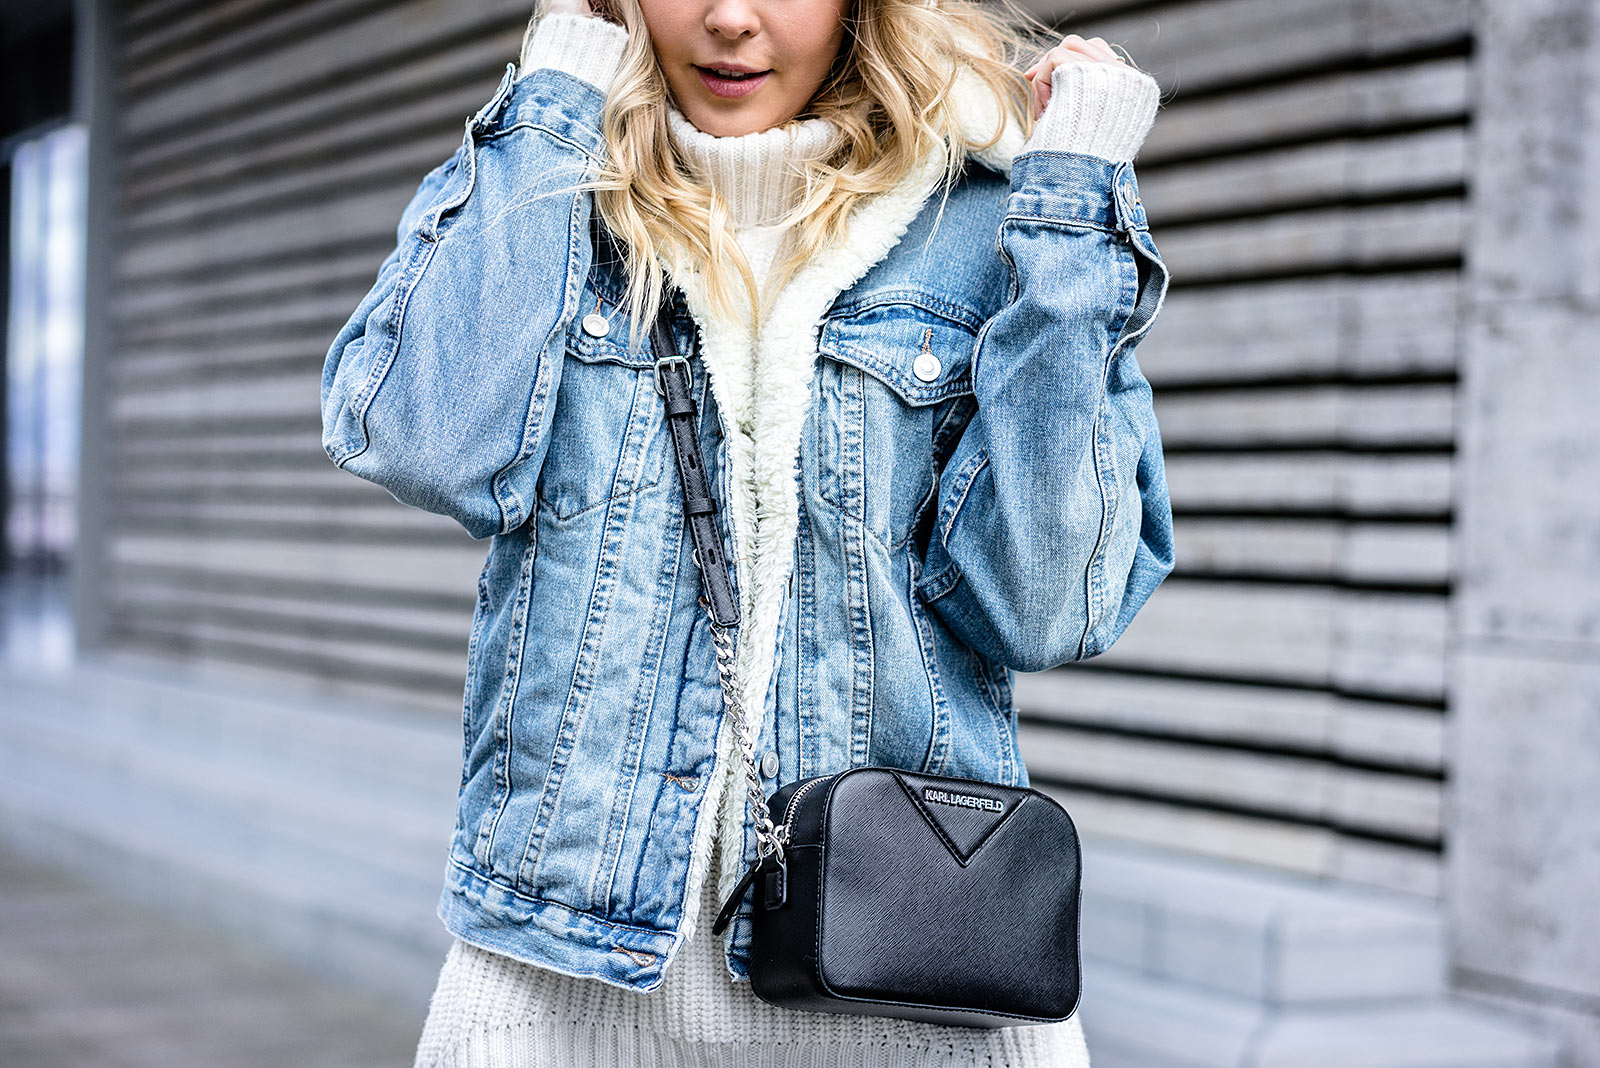 jeansjacke mit fell mein winter outfit fashion blog. Black Bedroom Furniture Sets. Home Design Ideas